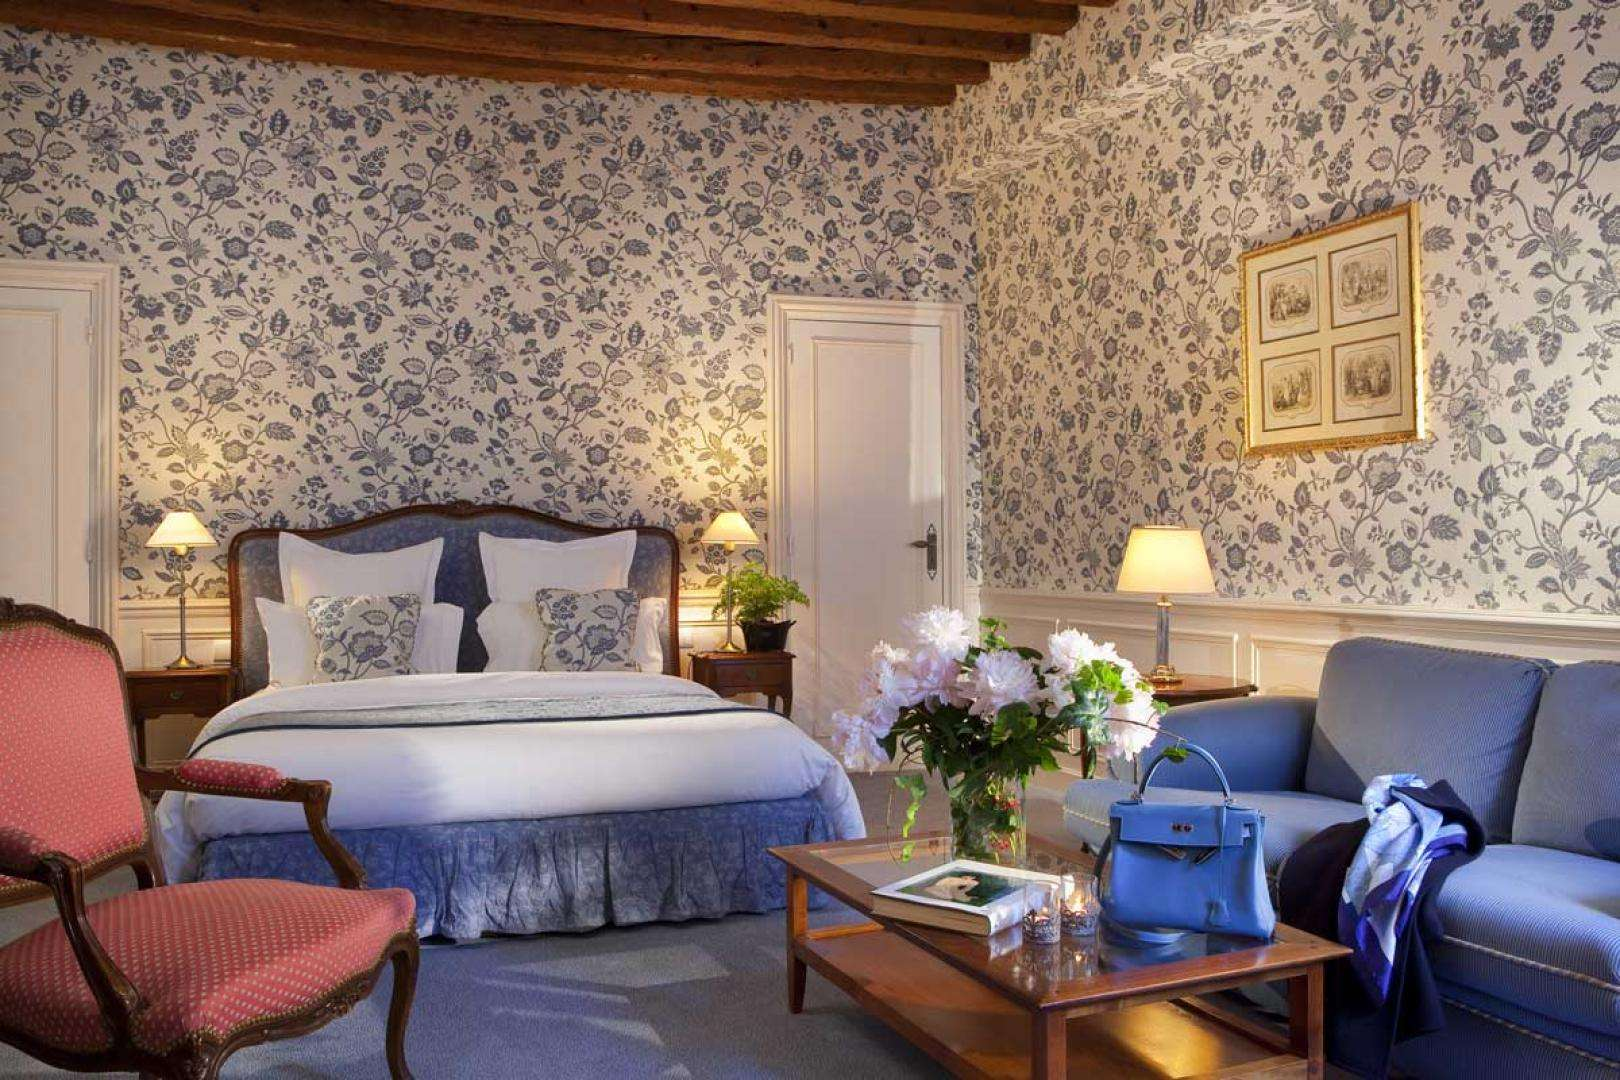 Chambre Simple Chambre Double Difference Hotel D Angleterre Rooms And Suites Paris Saint Germain Des Prés